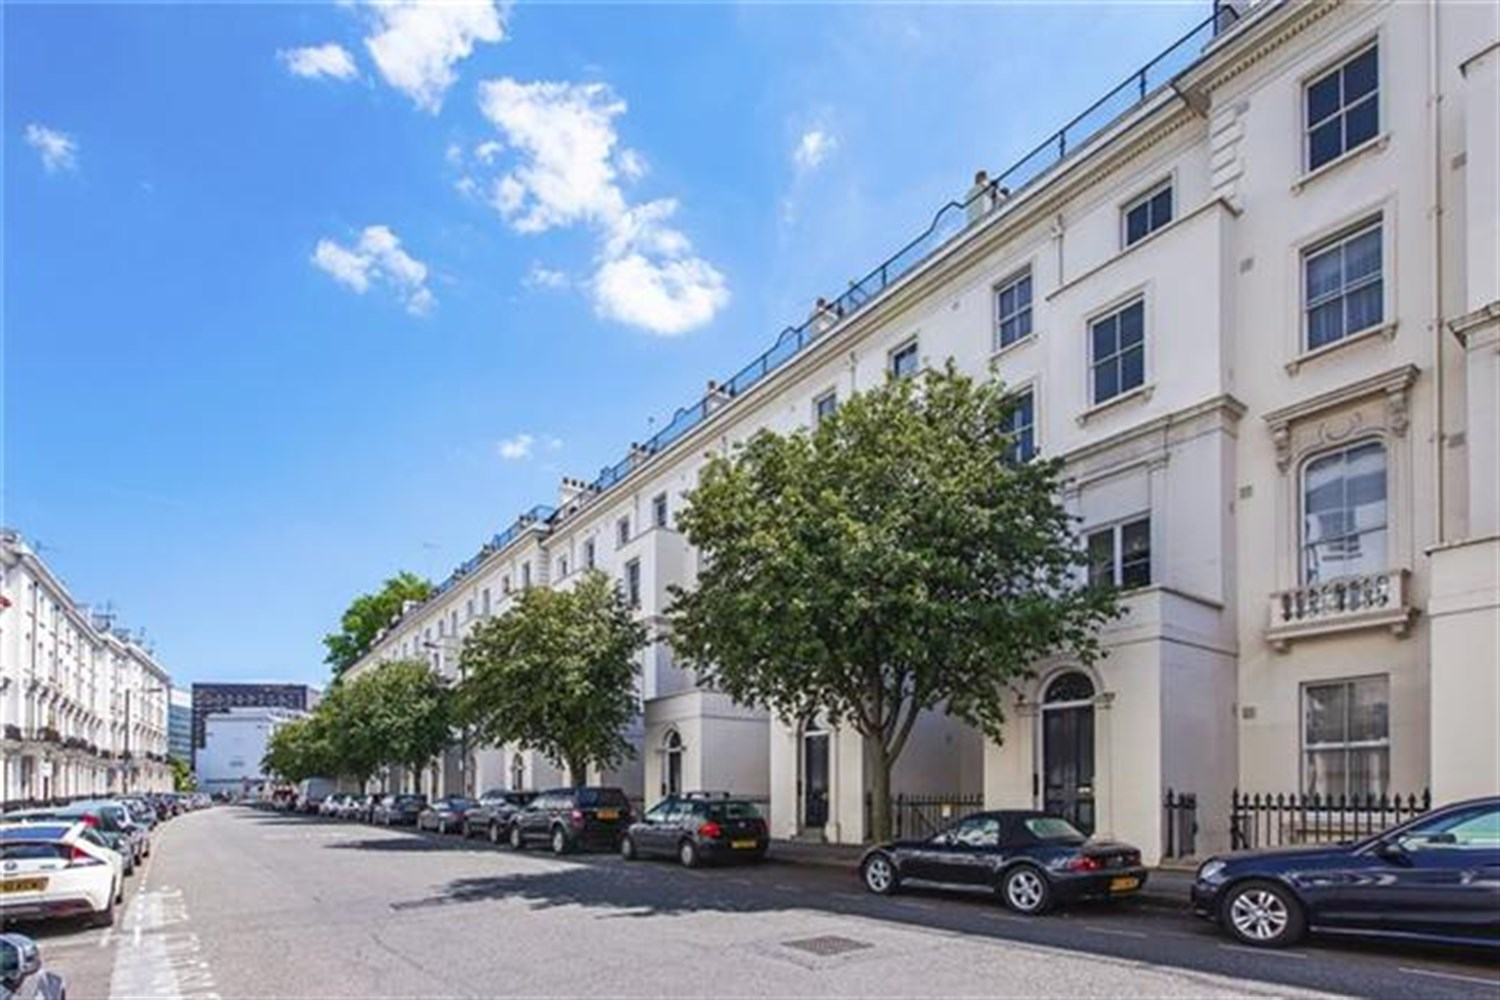 Porchester Square, Bayswater, W2